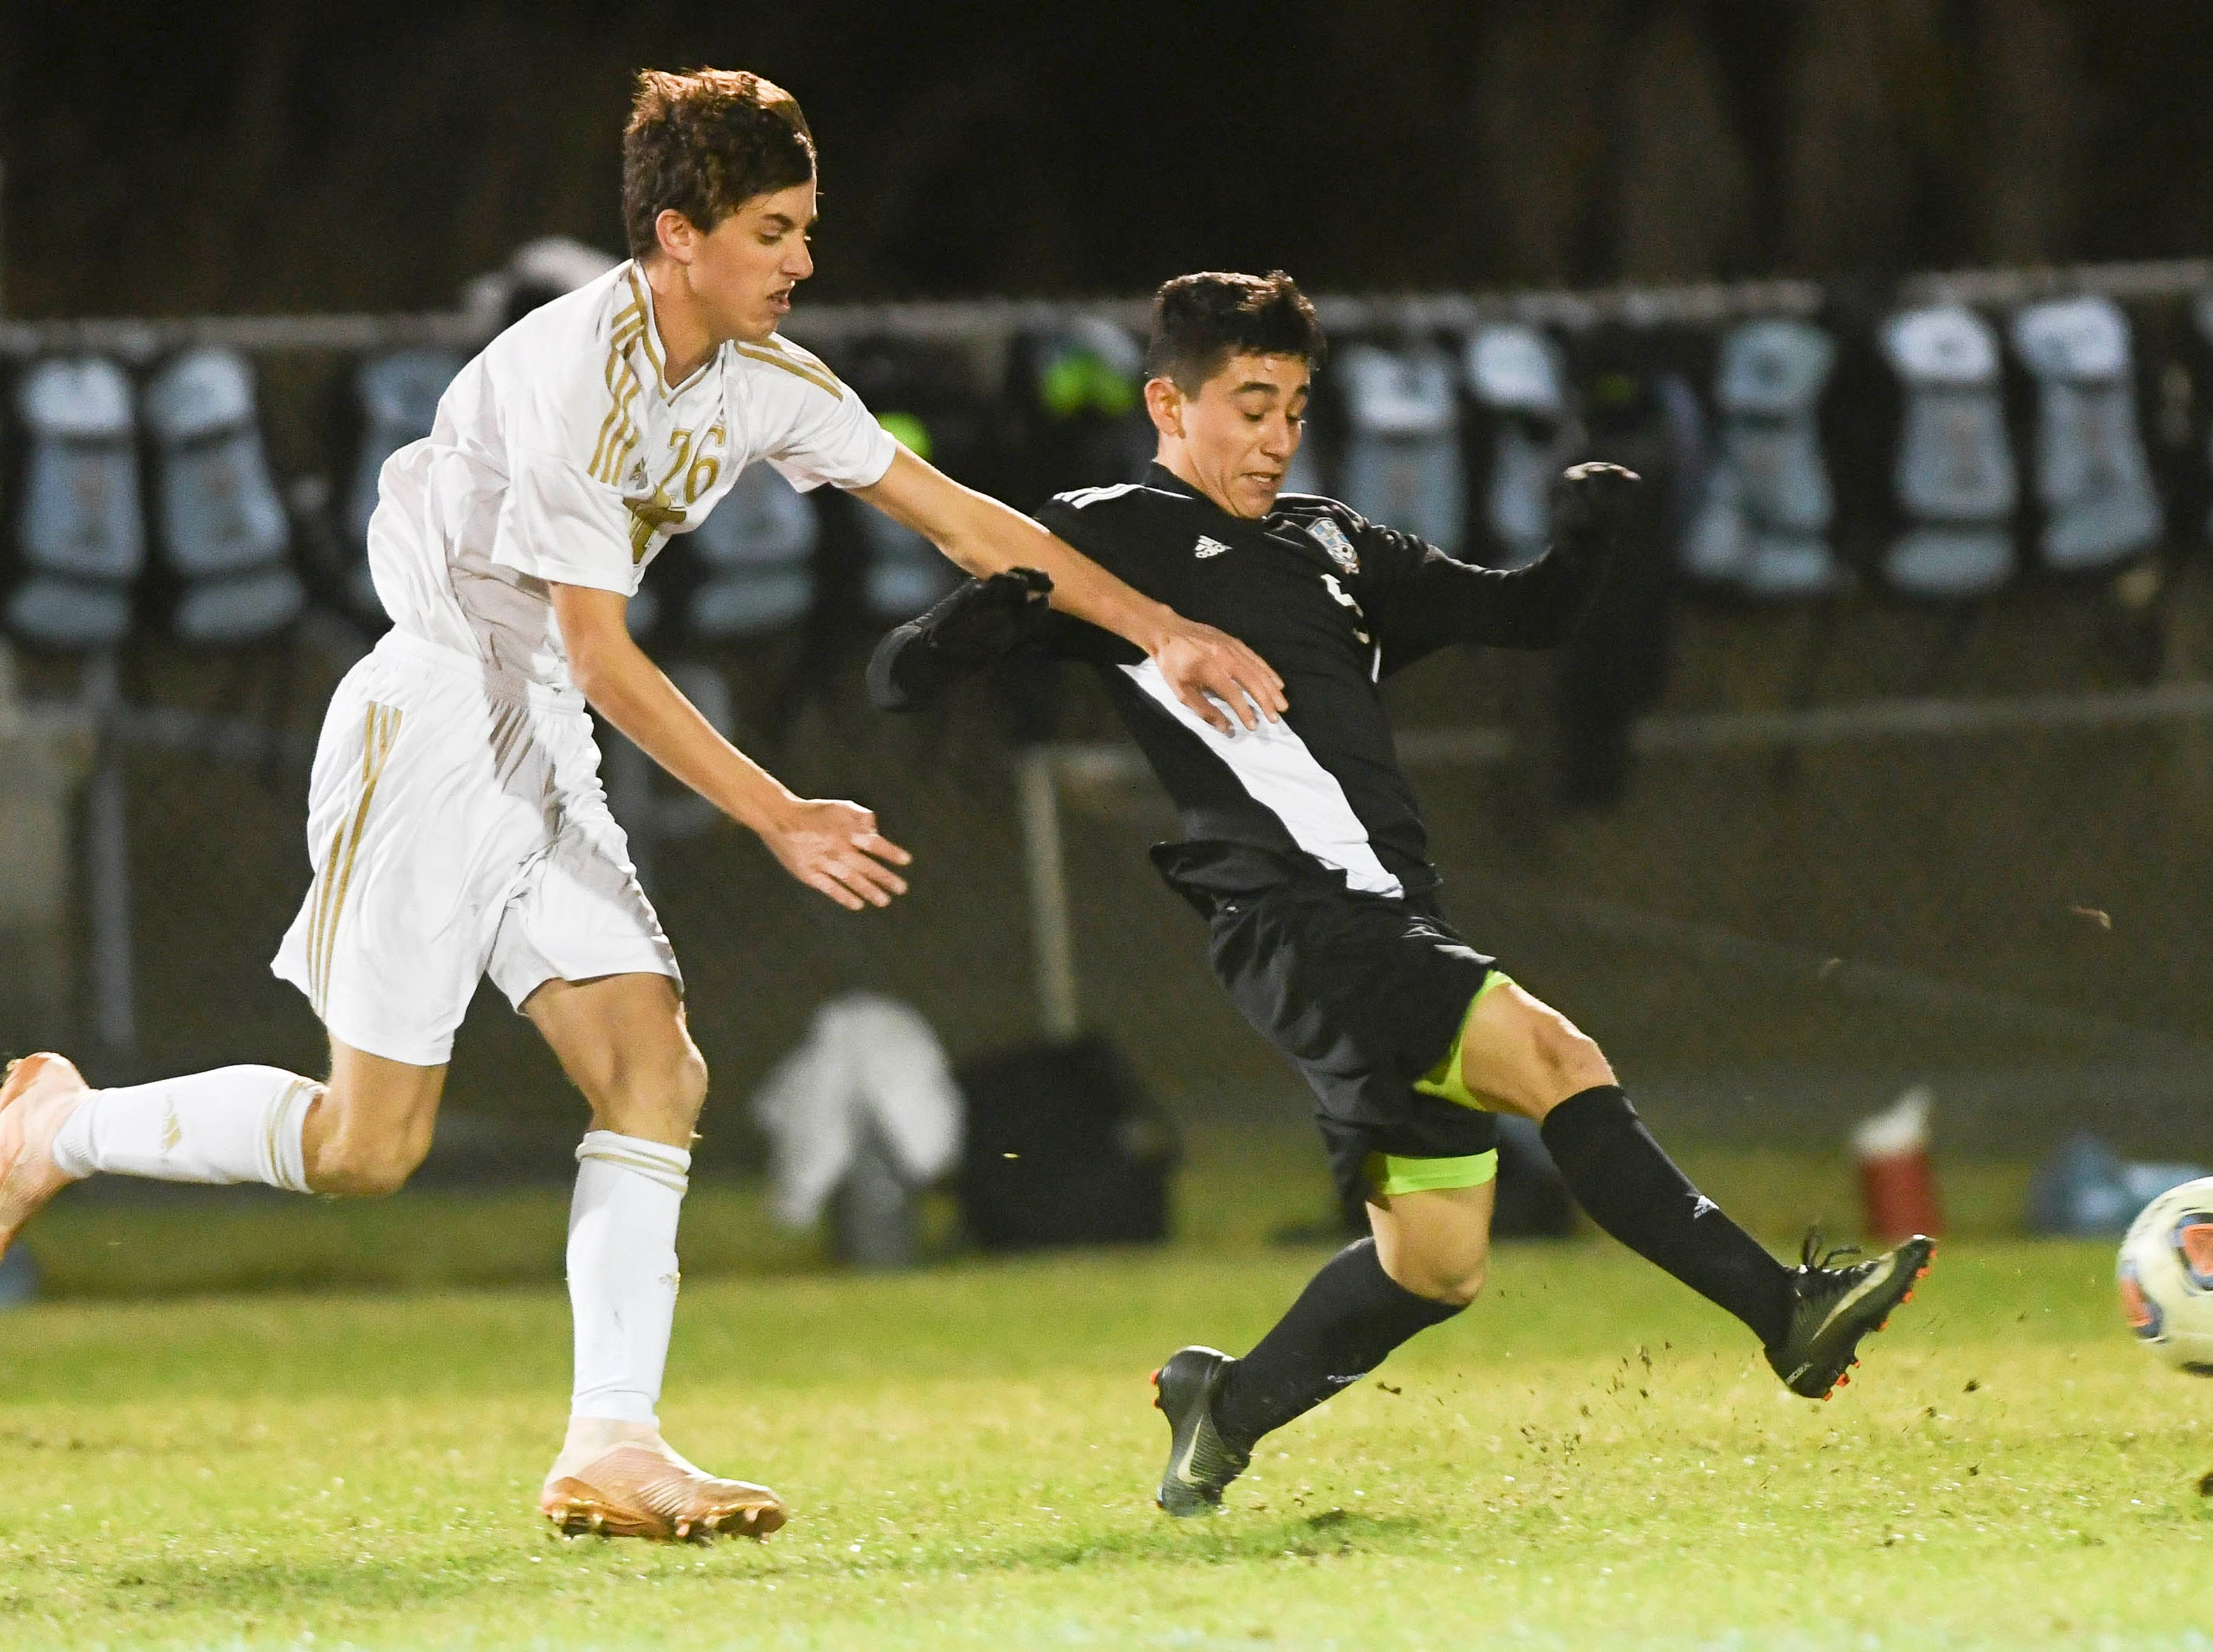 Arath Castaneda of Rockledge (5) directs the ball away from Seamus Feeney of Merritt Island during Wednesday's District 12, Class 3A semifinal at McLarty Stadium